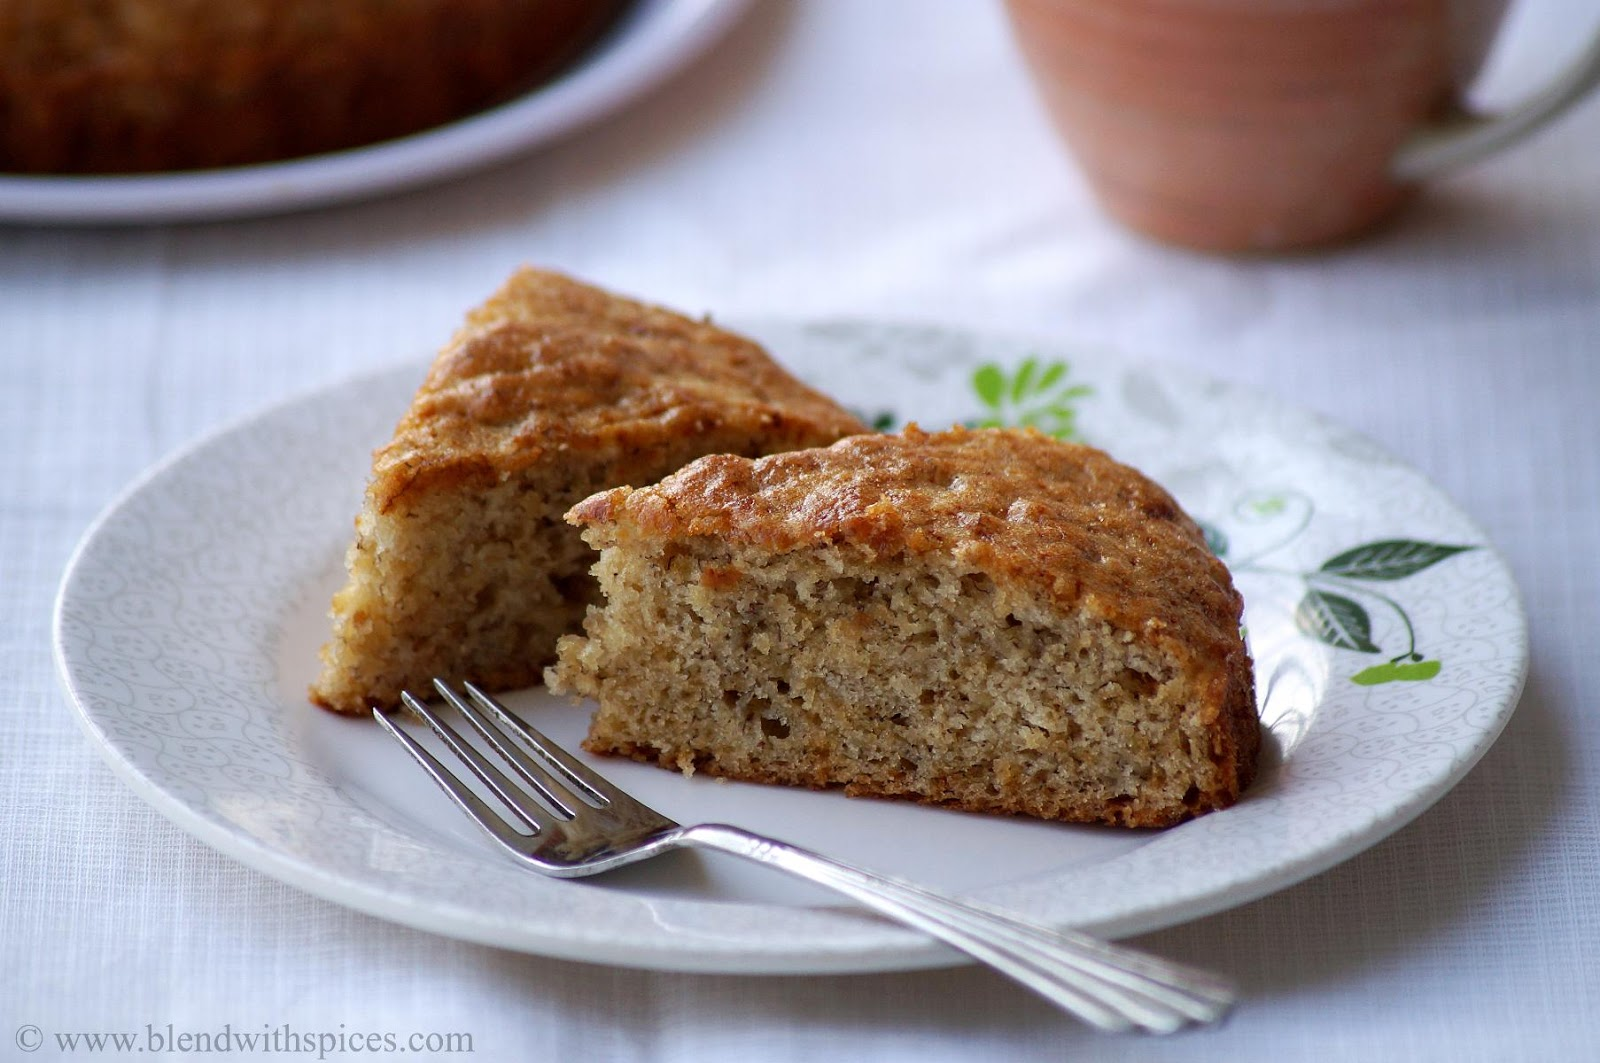 Banana Walnut Cake Recipe With Oil